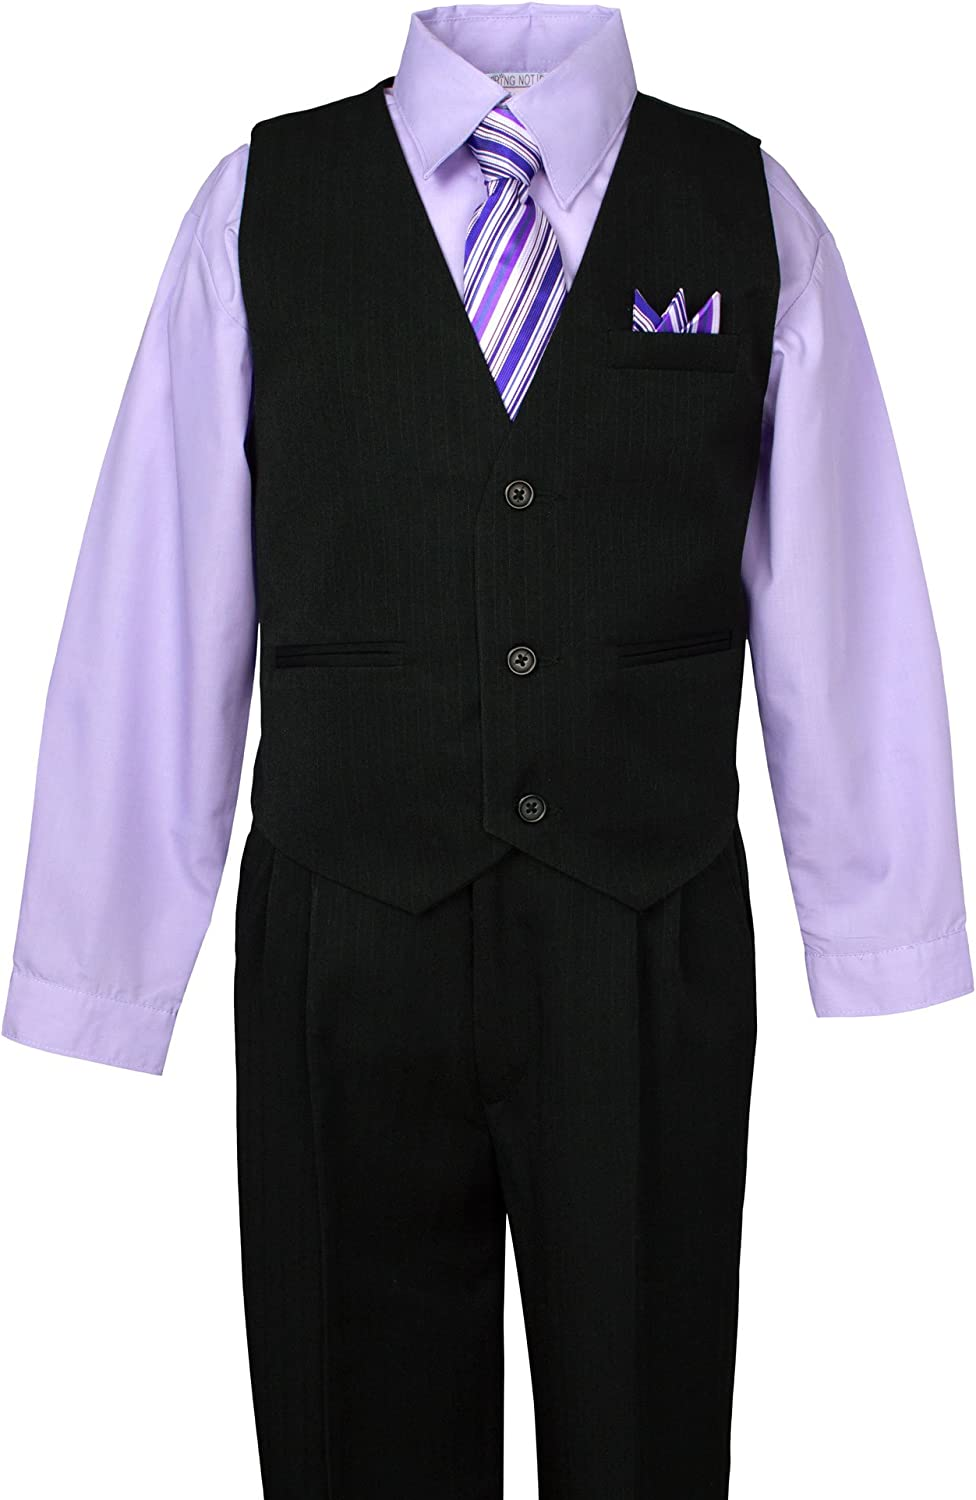 B00I1R5T2S Spring Notion Big Boys\' 5 Piece Pinstripe Vest Set with Necktie and Bowtie Lilac 71yDbp8r2BNL